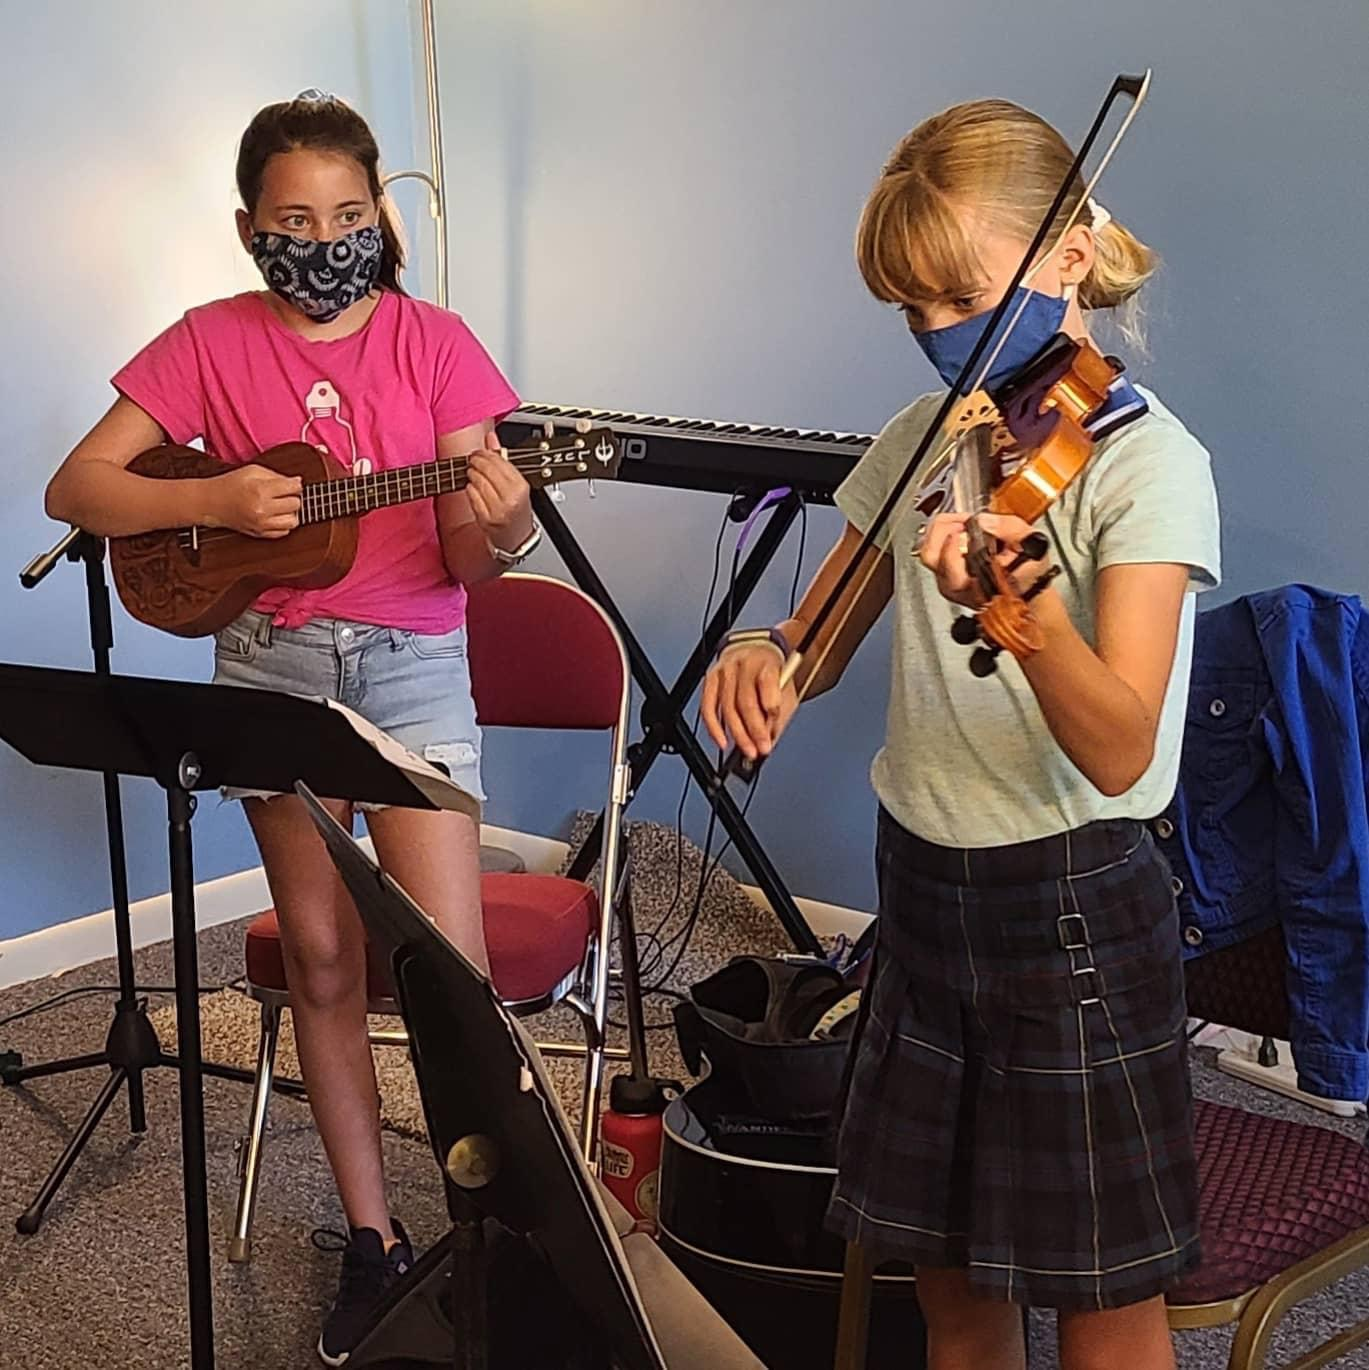 IMG 1105 - Lincoln music studio adapts practice during pandemic